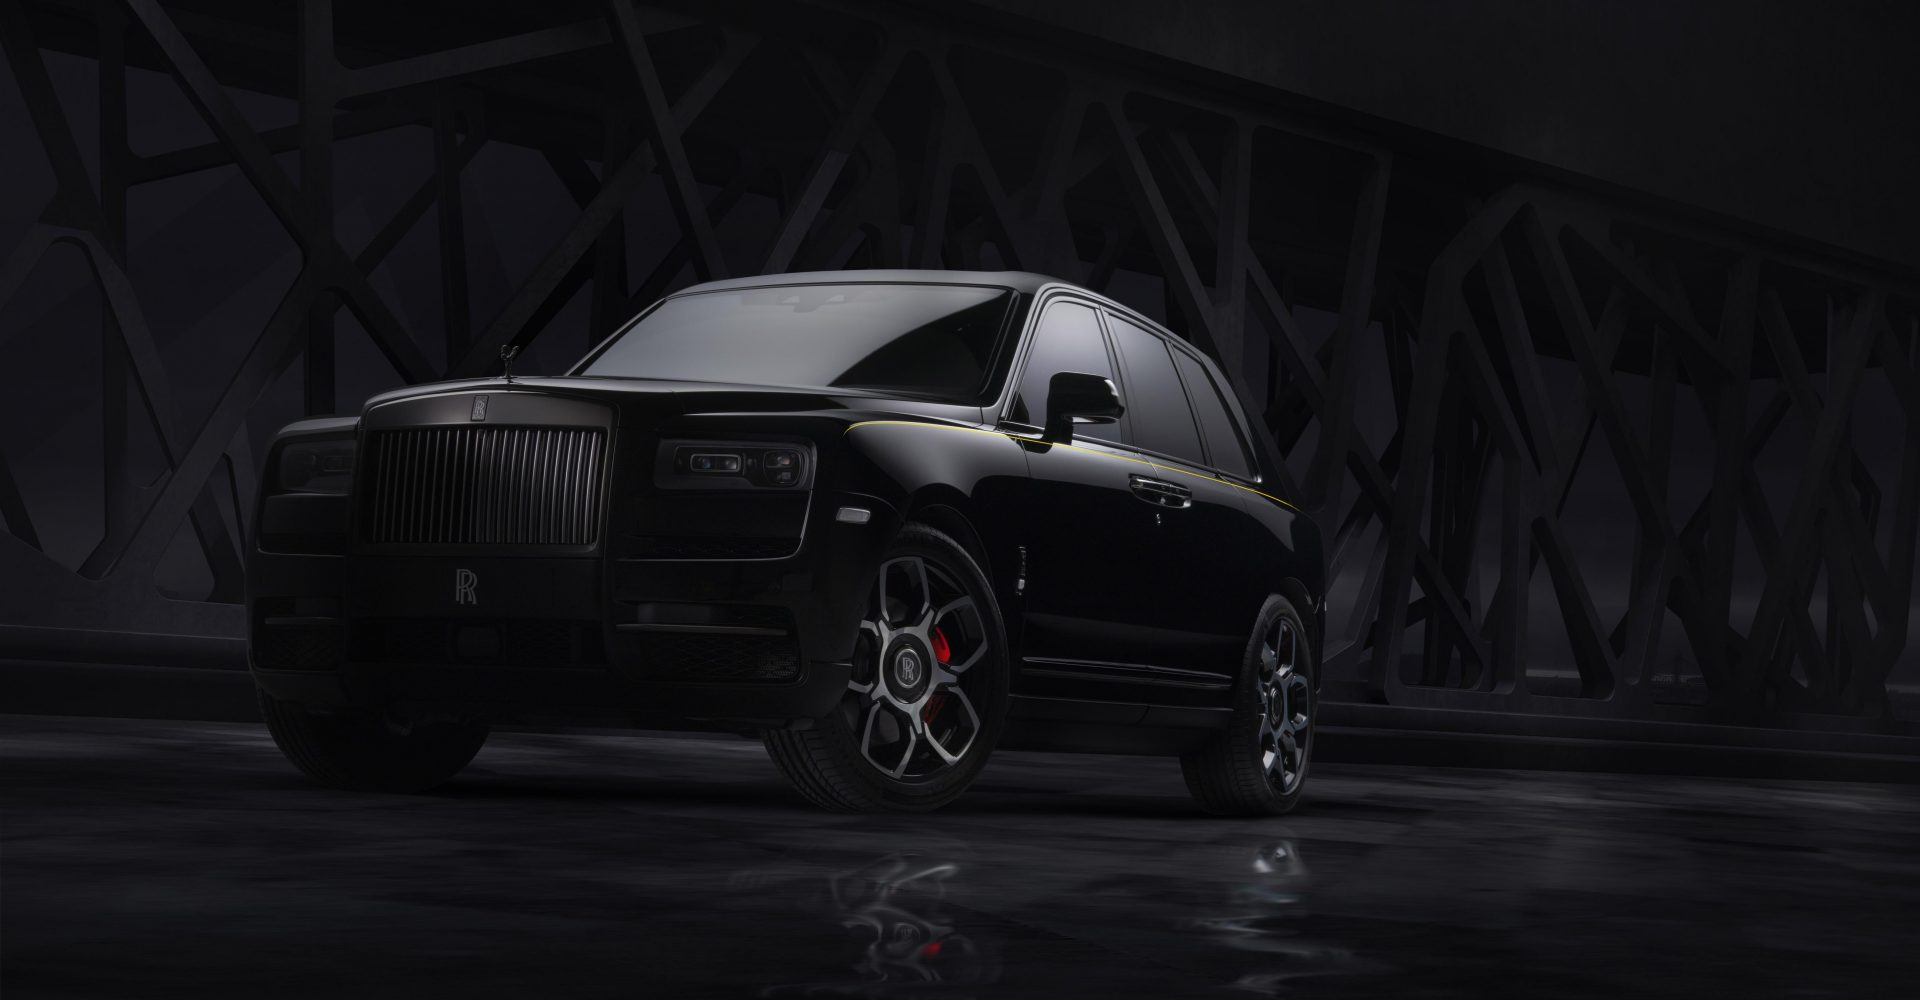 Rolls-Royce bolsters Cullinan range with Black Badge model